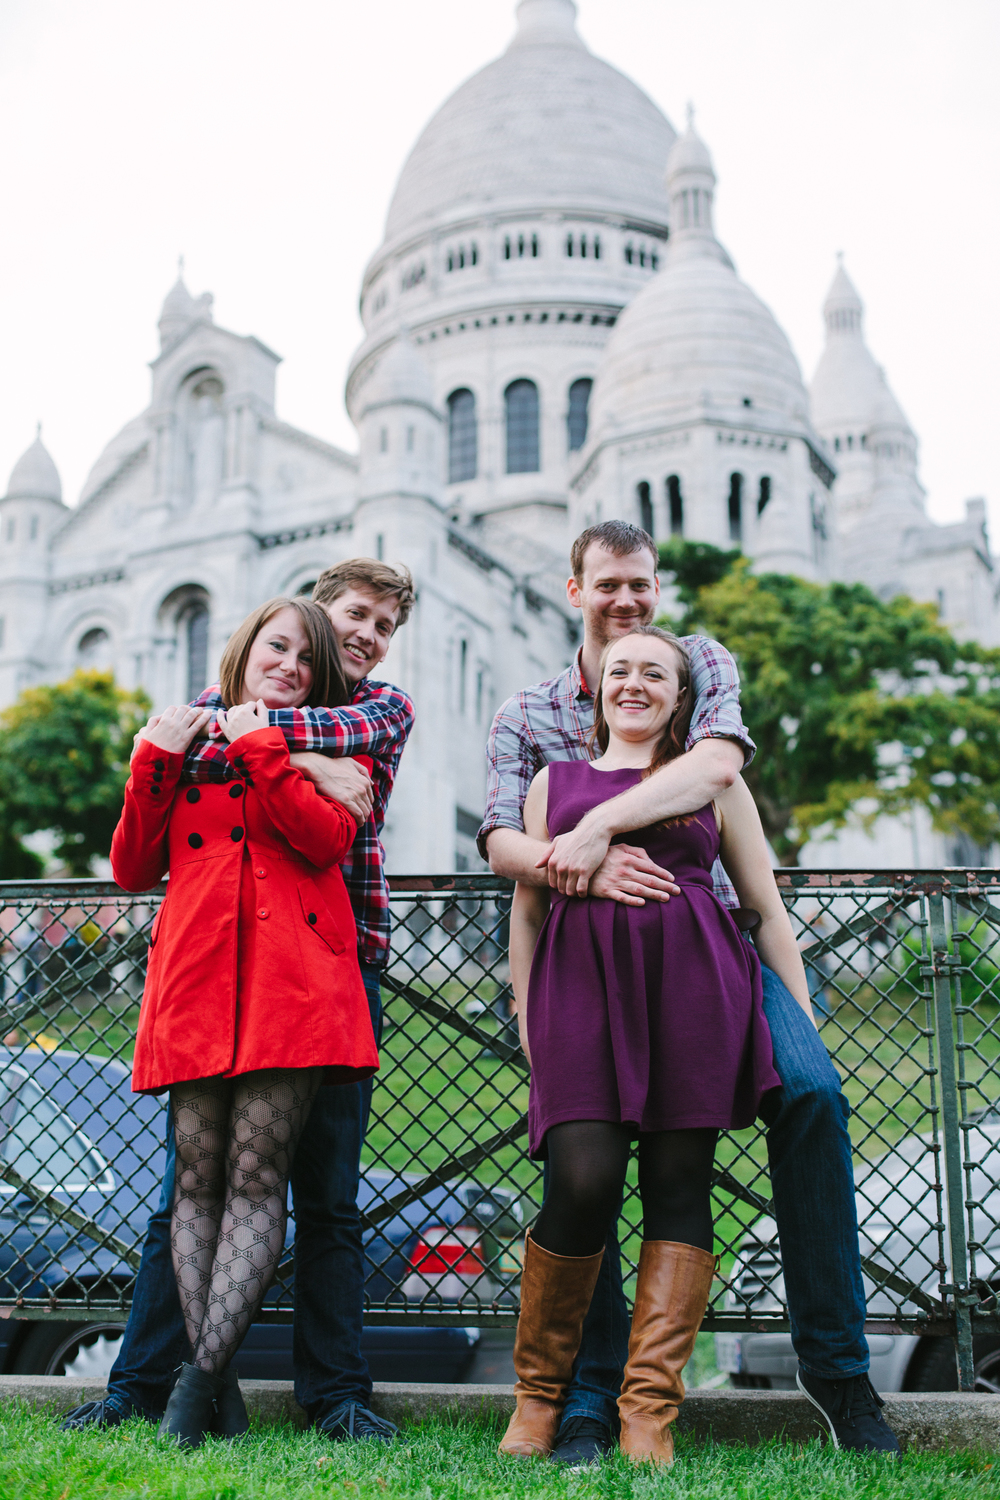 FLYTOGRAPHER | Paris Vacation Photographer - 9